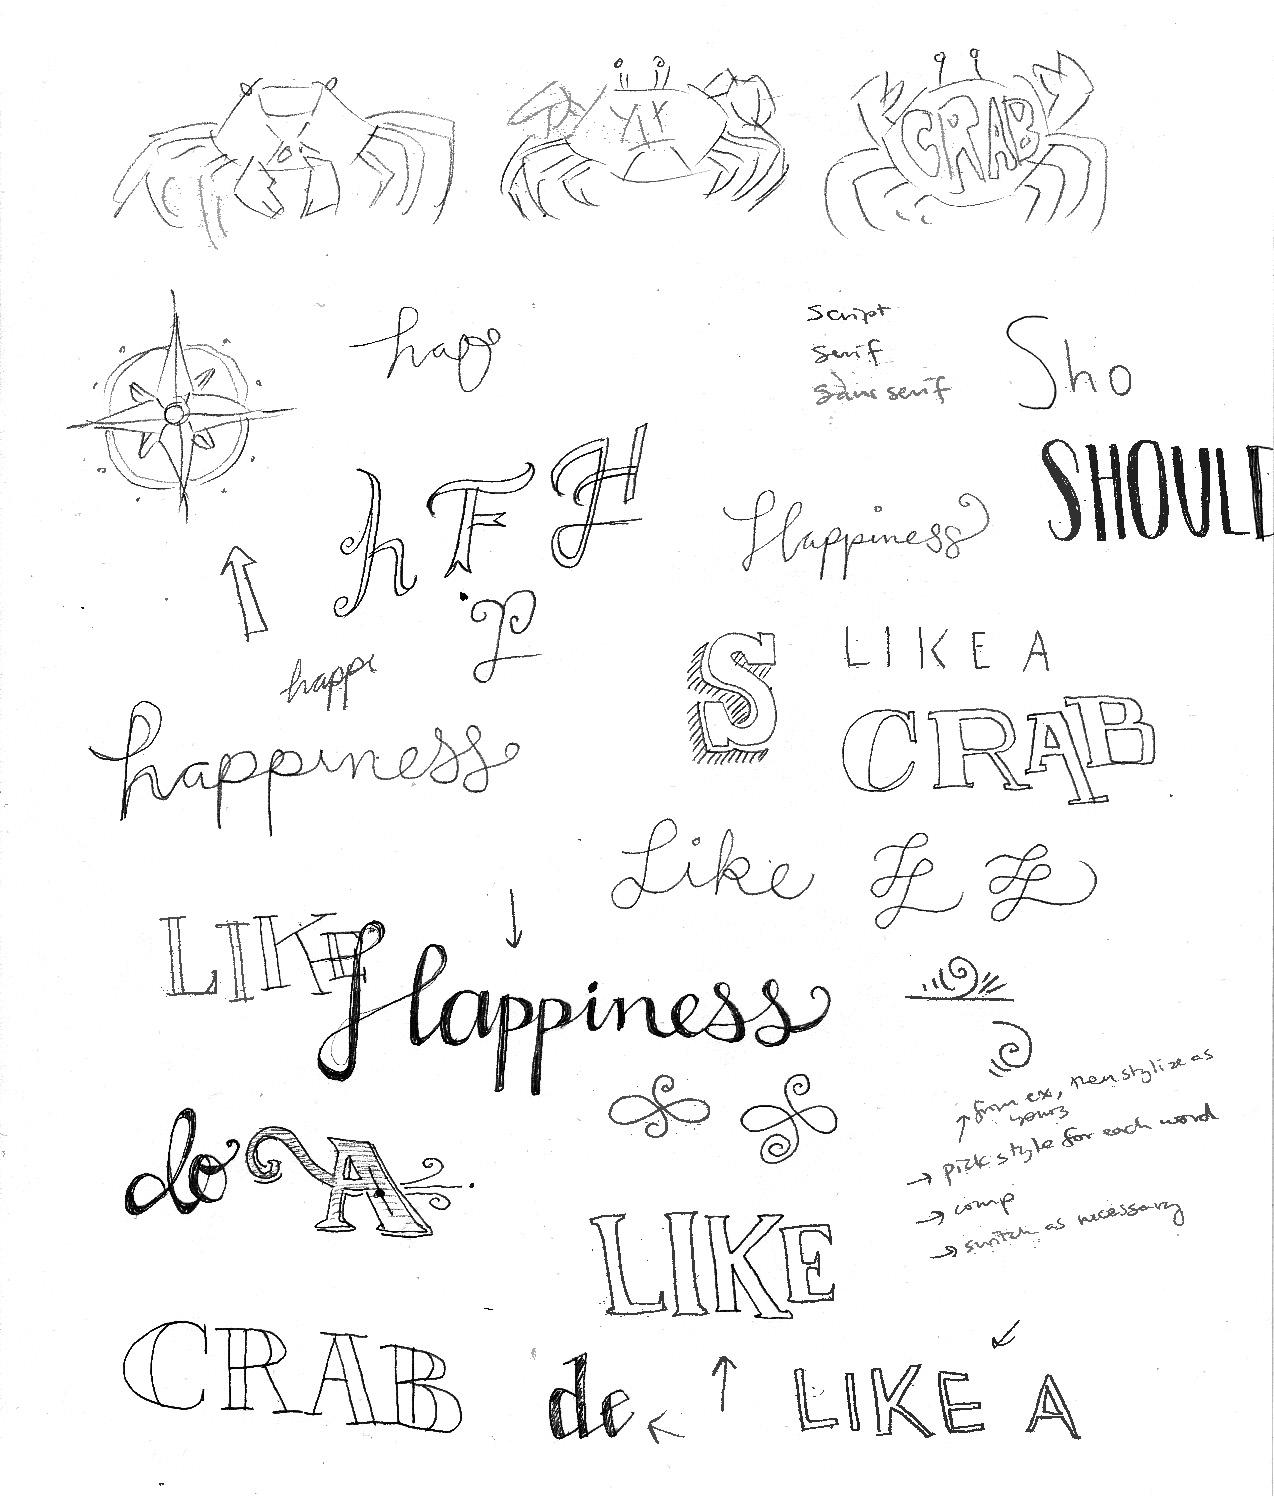 Happiness should be approached sideways, like a crab. - image 11 - student project